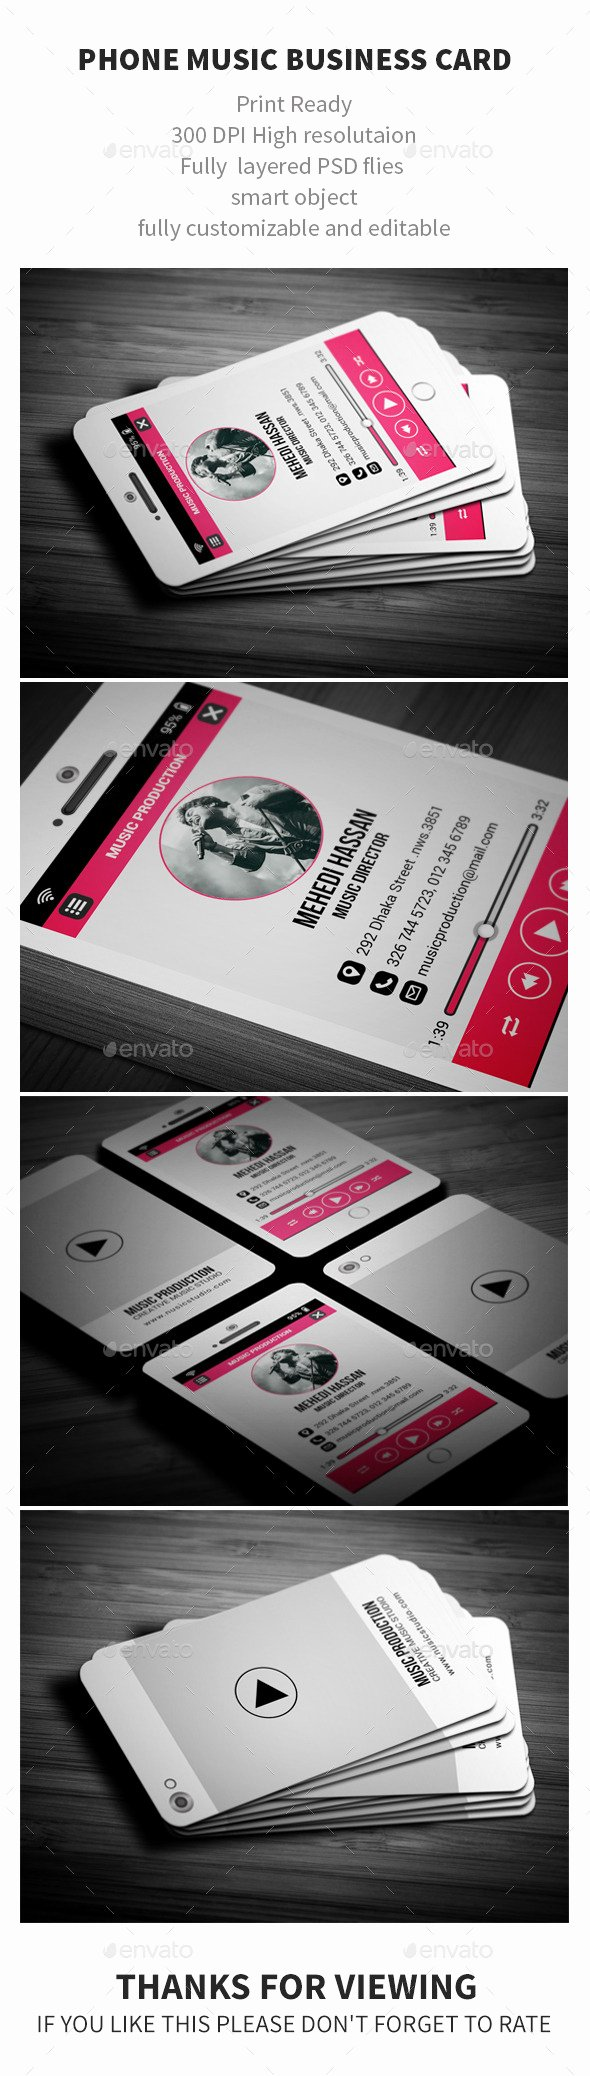 Music Business Cards Template Inspirational Phone Music Business Card by Mehedi Hassan